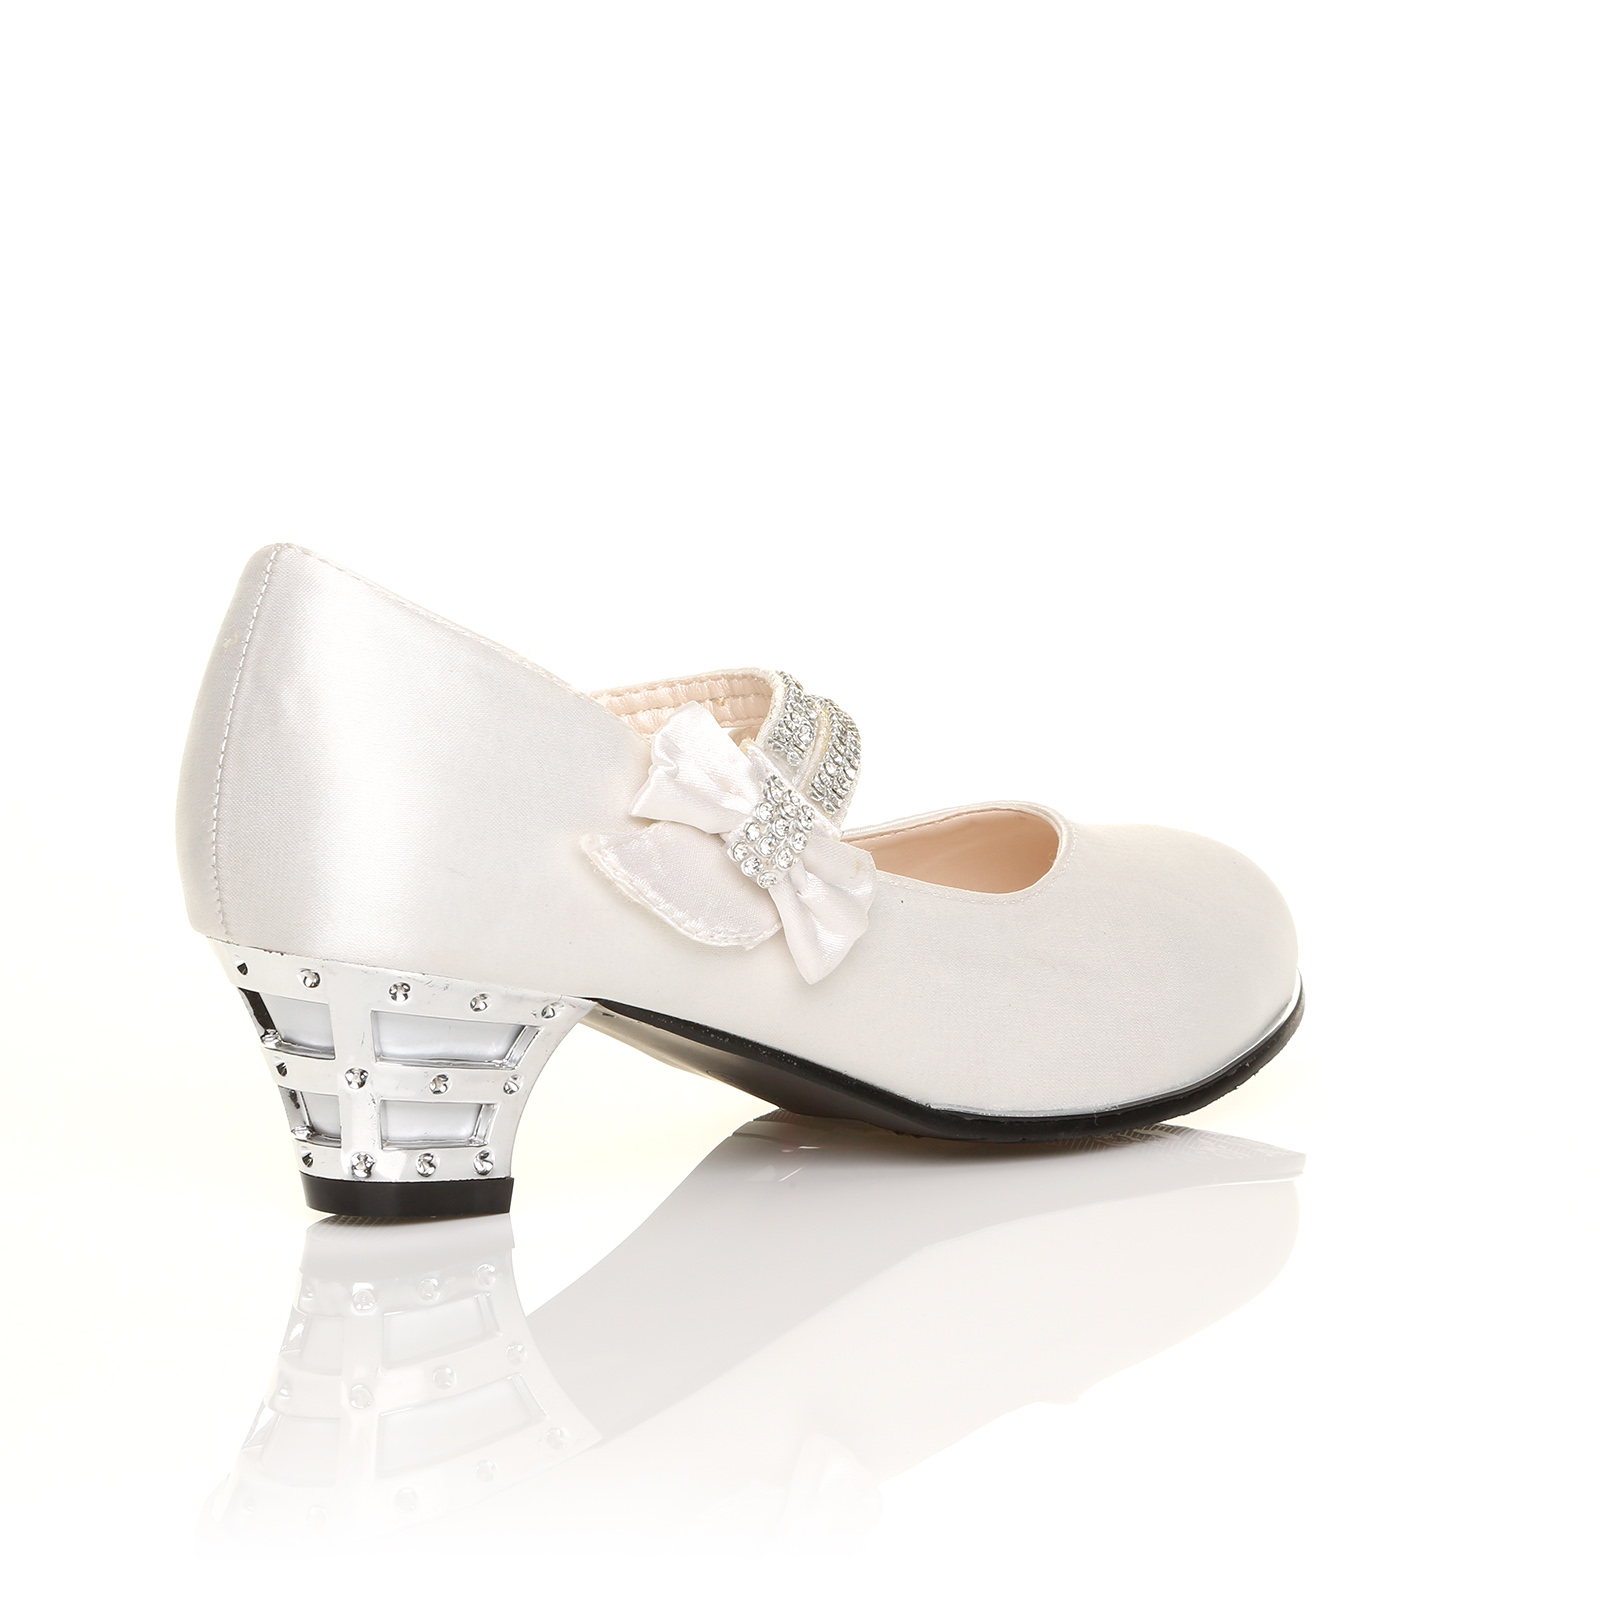 GIRLS-KIDS-CHILDRENS-LOW-HEEL-PARTY-MARY-JANE-WEDDING-STYLE-SANDALS-SHOES-SIZE